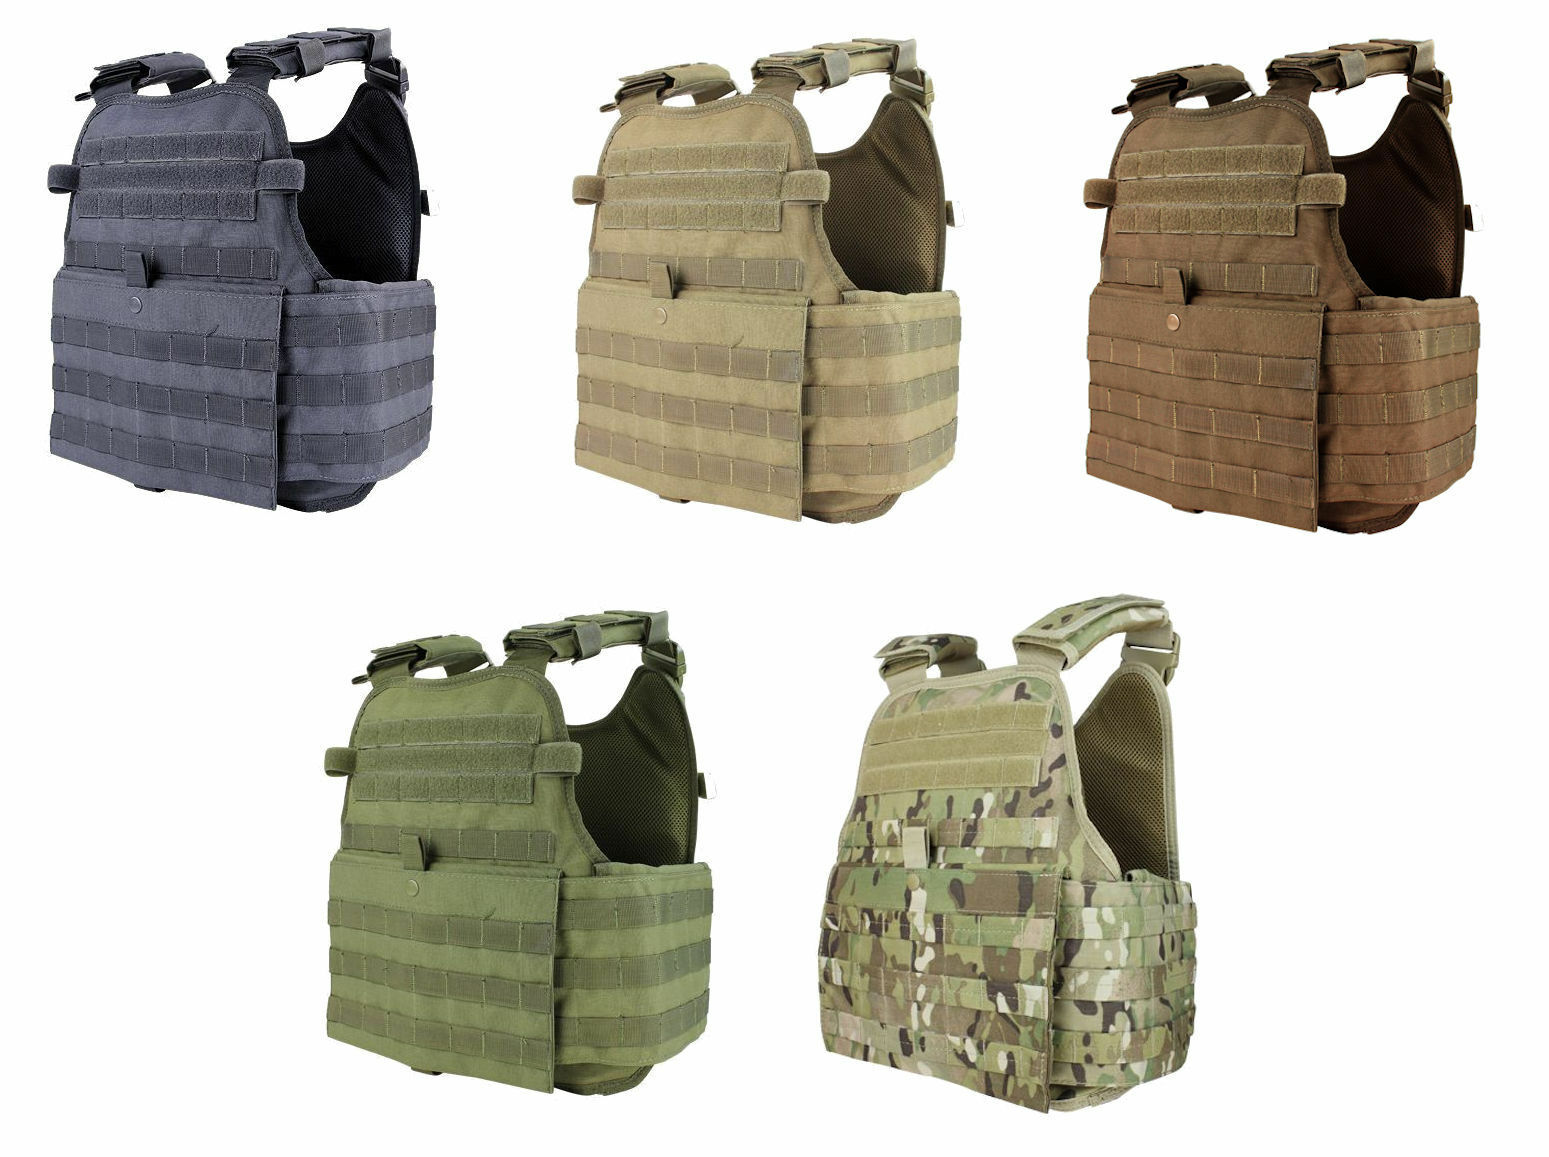 Condor MOPC Modular Operator Plate Carrier Armored Vest   exclusive designs